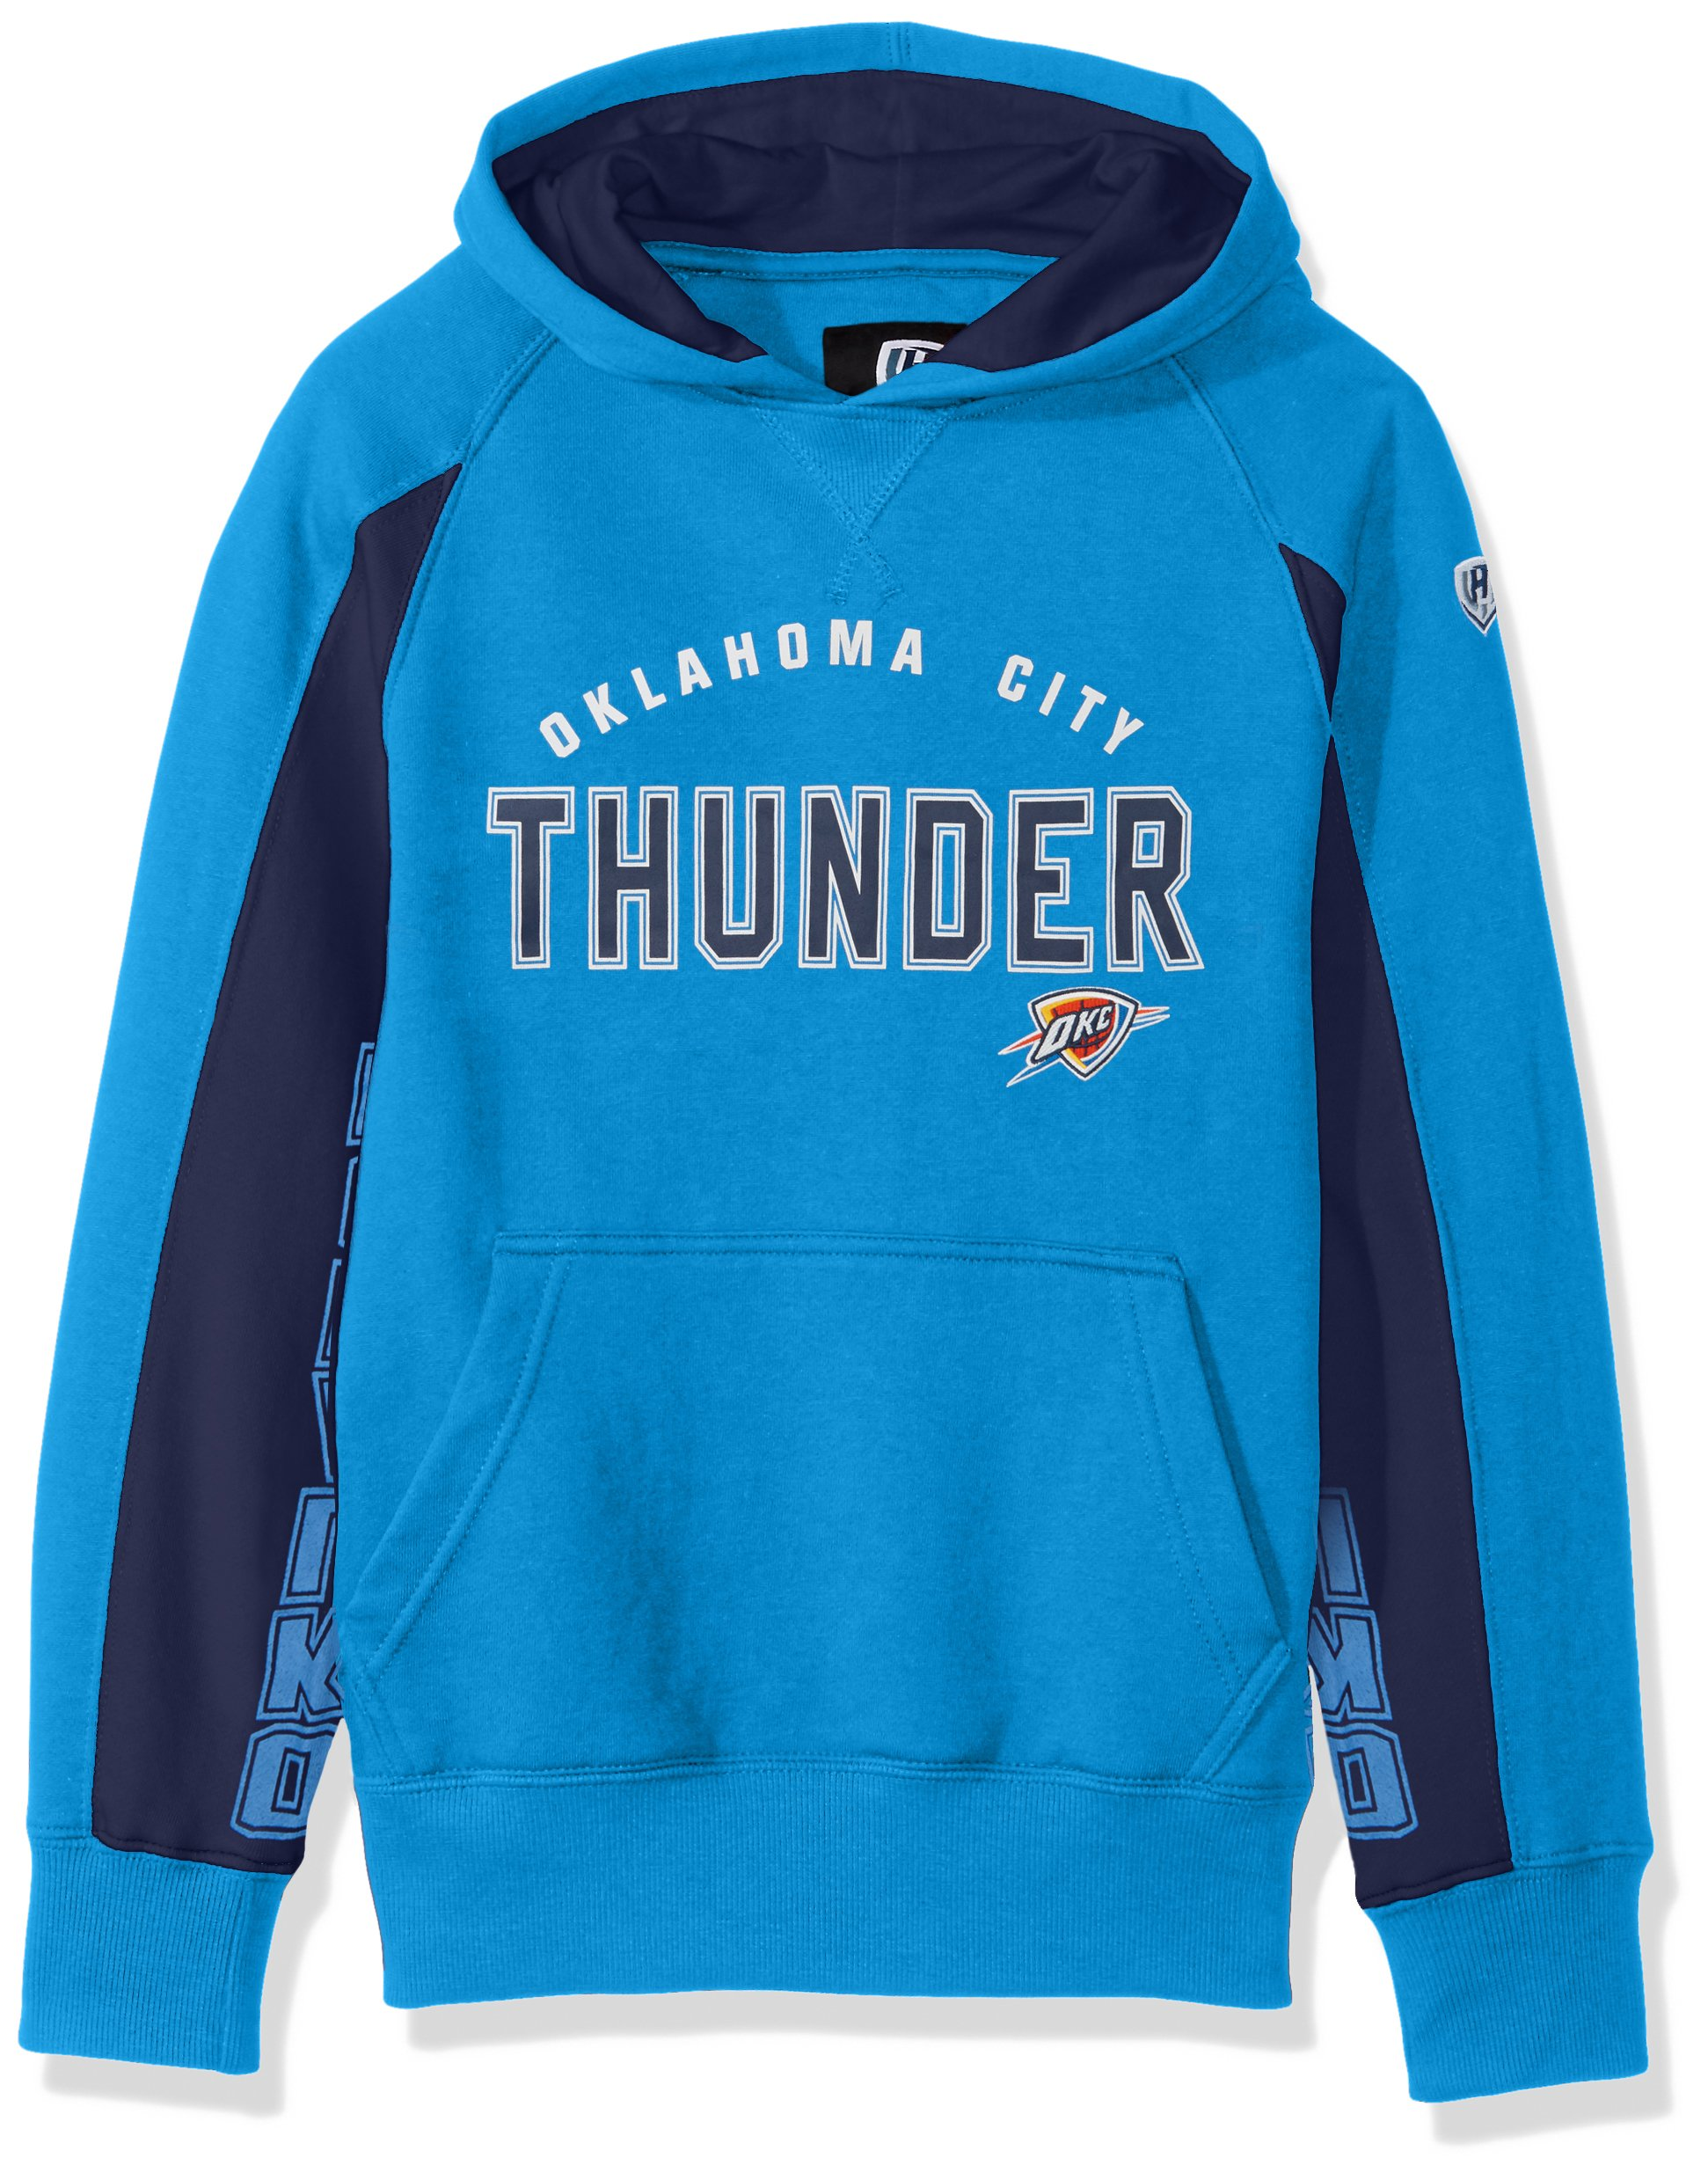 NBA Oklahoma City Thunder Centerfield Pullover Hoody, X-Large, Blue by Hands High